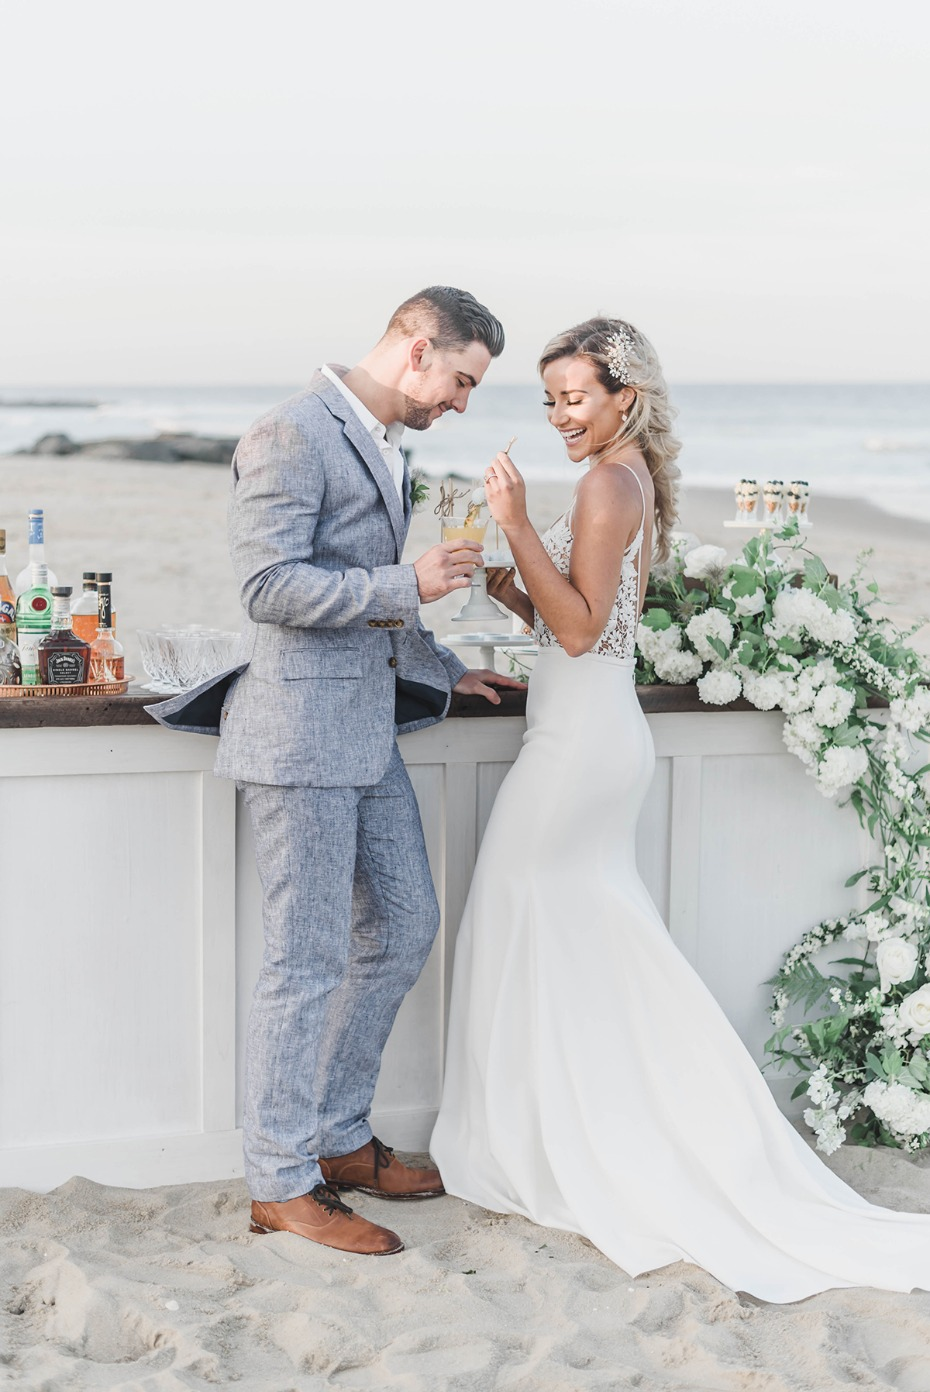 sweet beach wedding couple